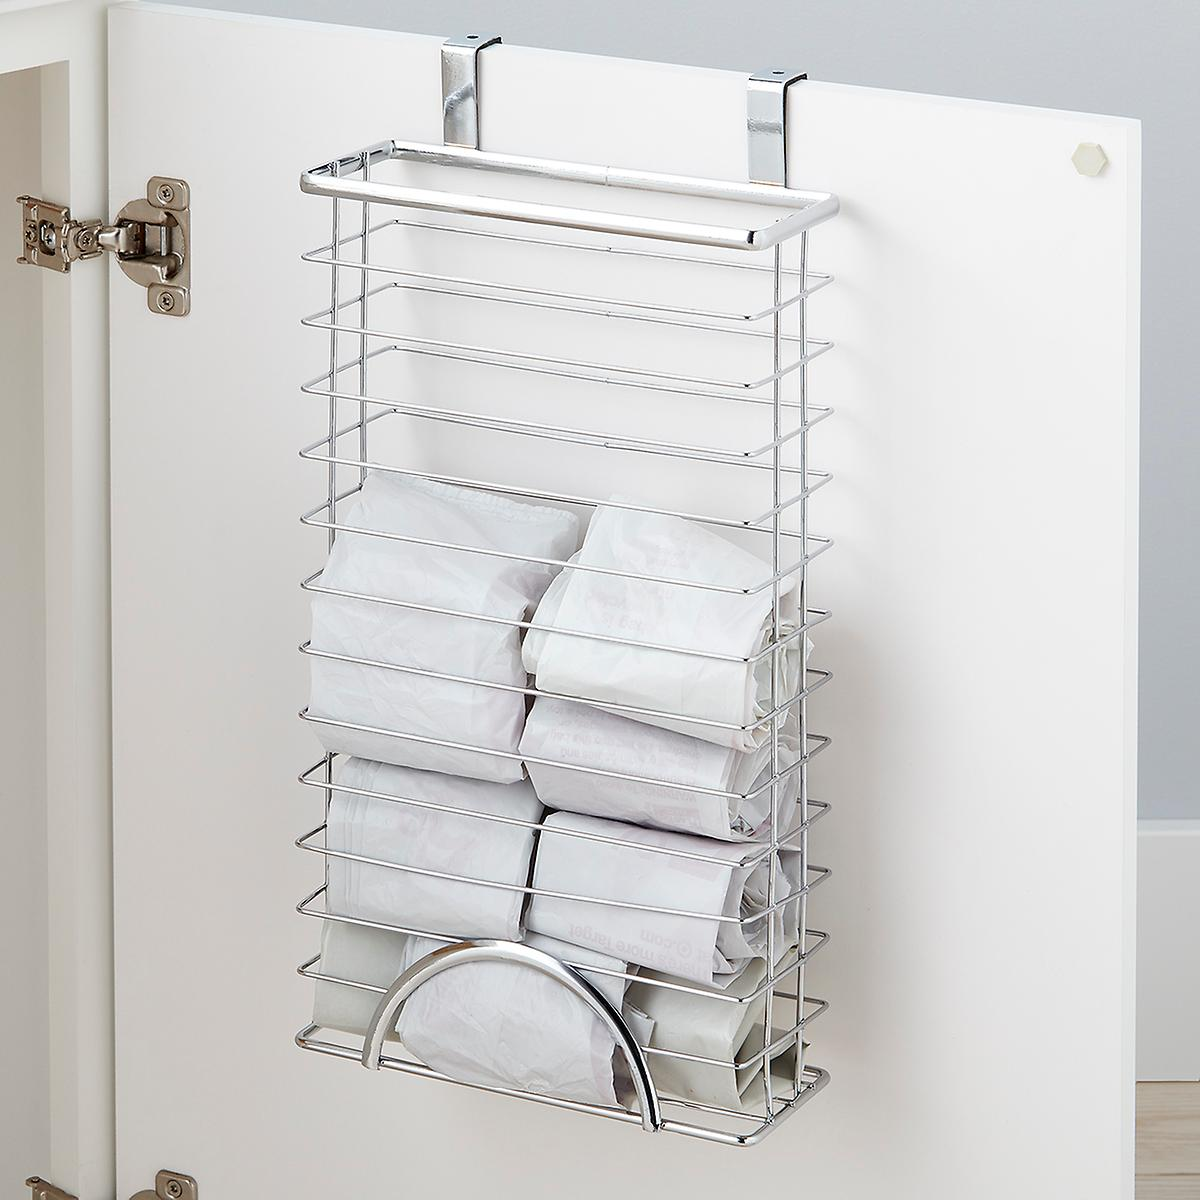 Chrome Over the Cabinet Grocery Bag Holder